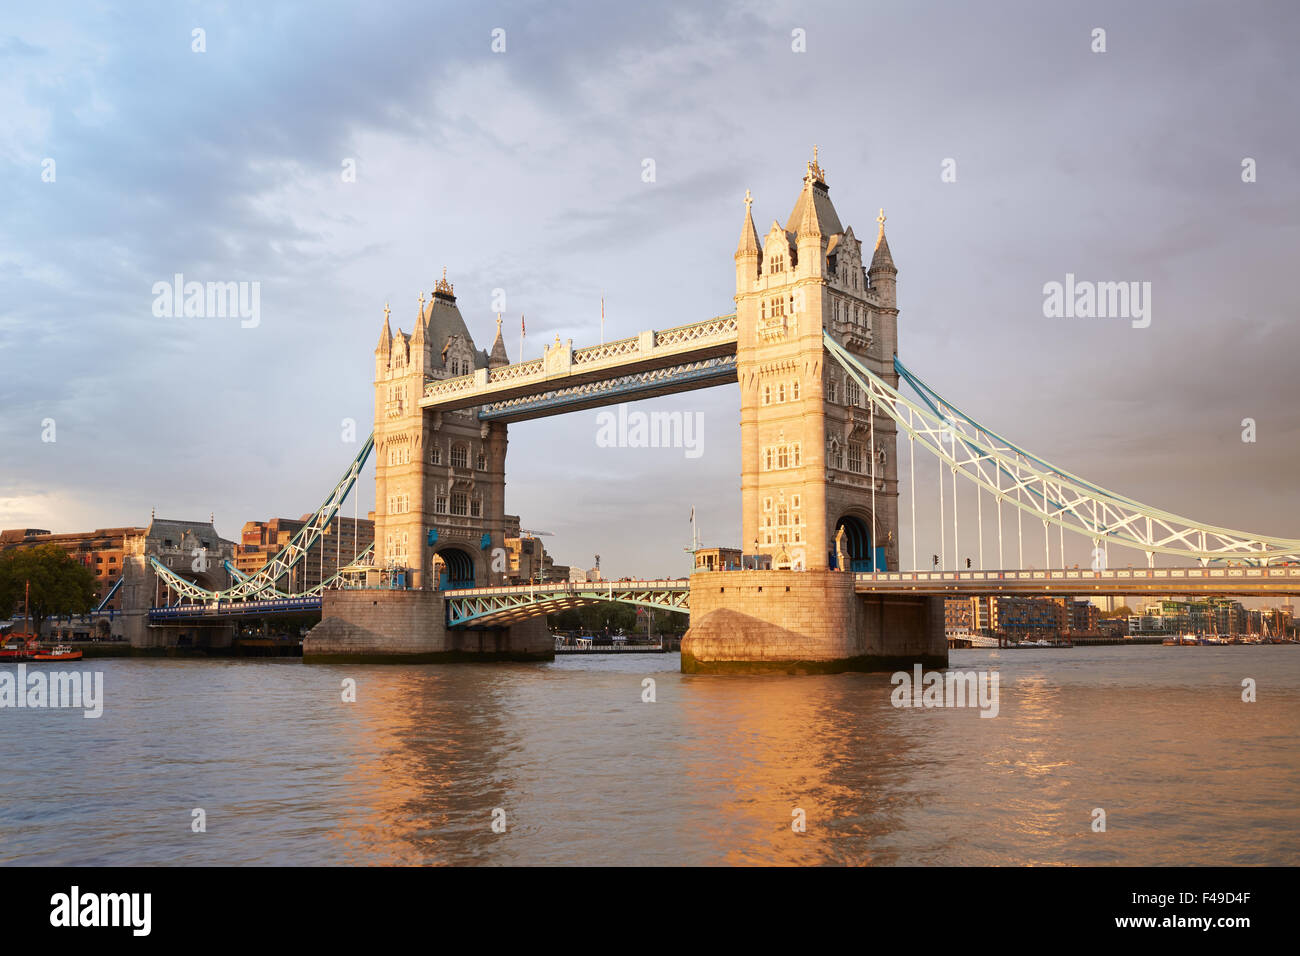 Tower Bridge à Londres dans l'après-midi du soleil Photo Stock